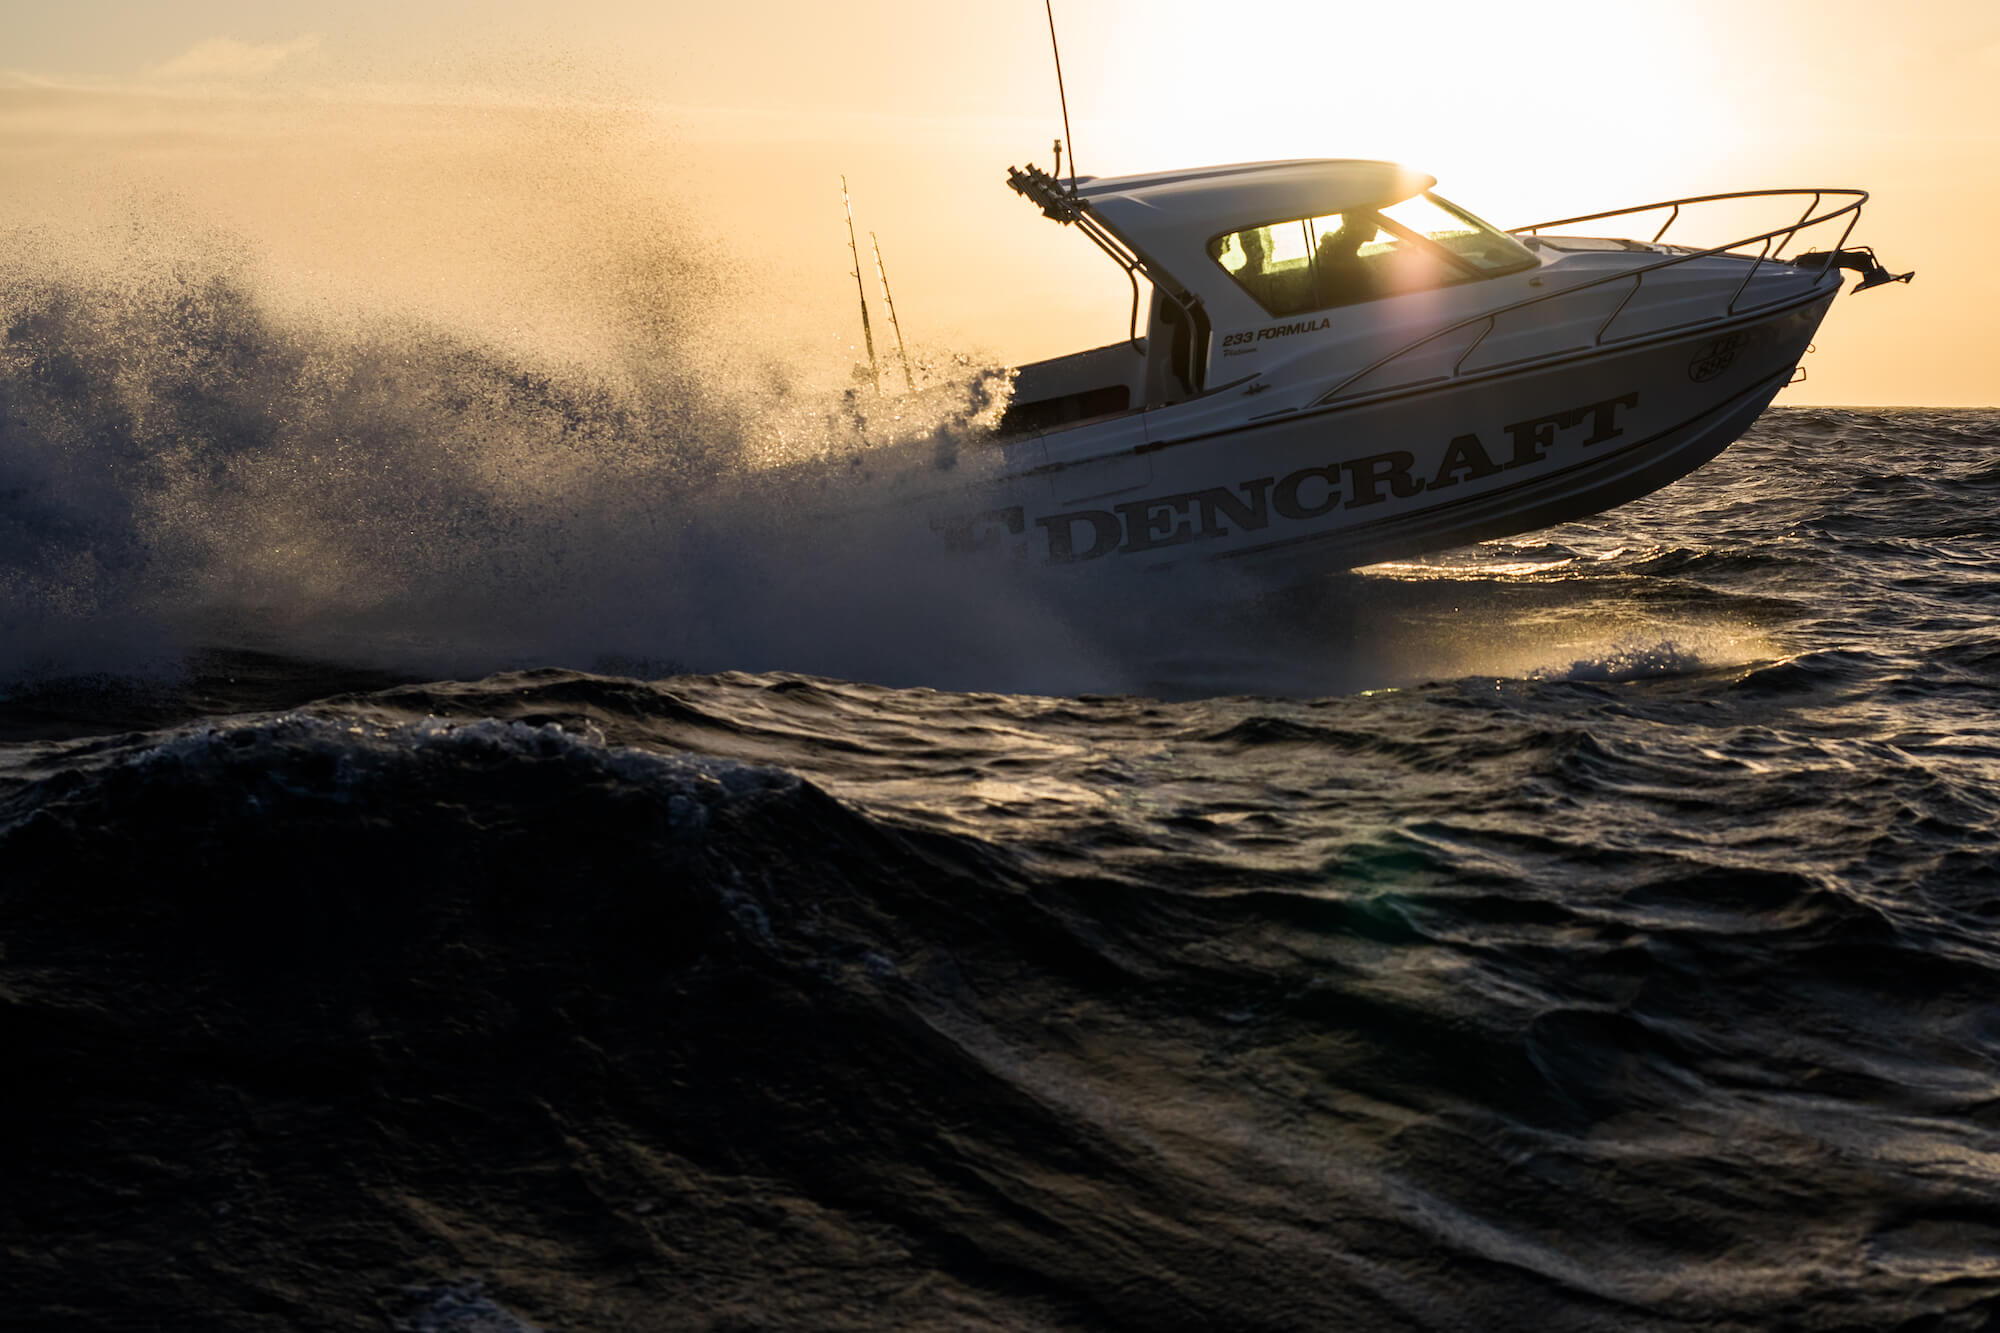 Edencraft 233 Formula Platinum travelling quickly offshore silhouetted against the sun